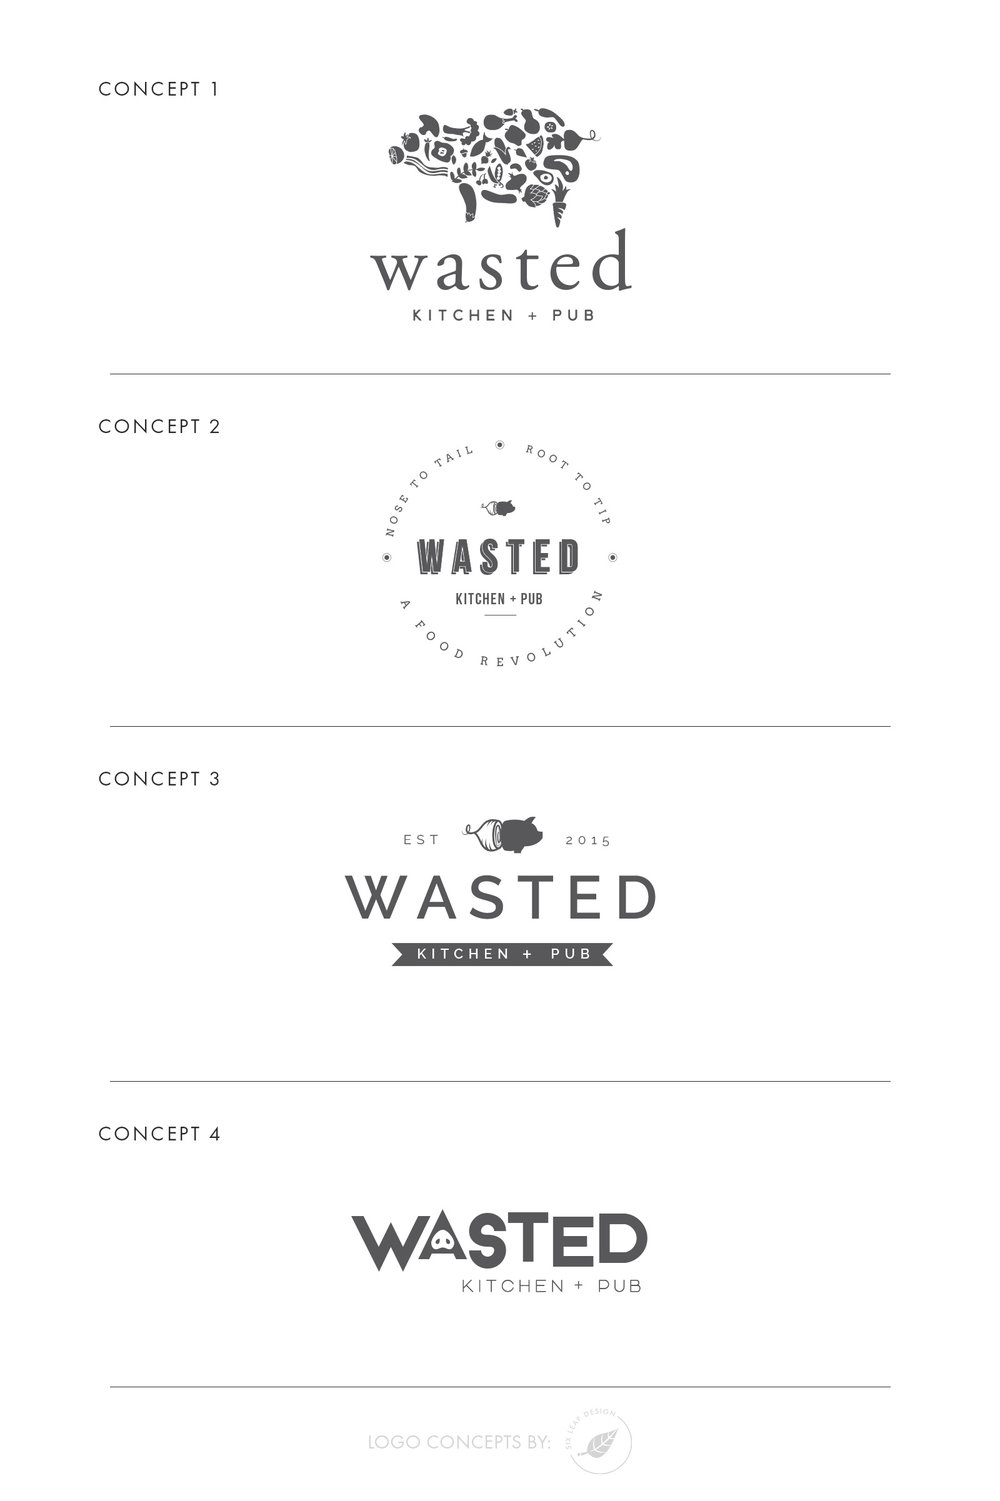 Restaurant Logo Concepts for Wasted Kitchen + Pub featuring Pig and Beet Icon